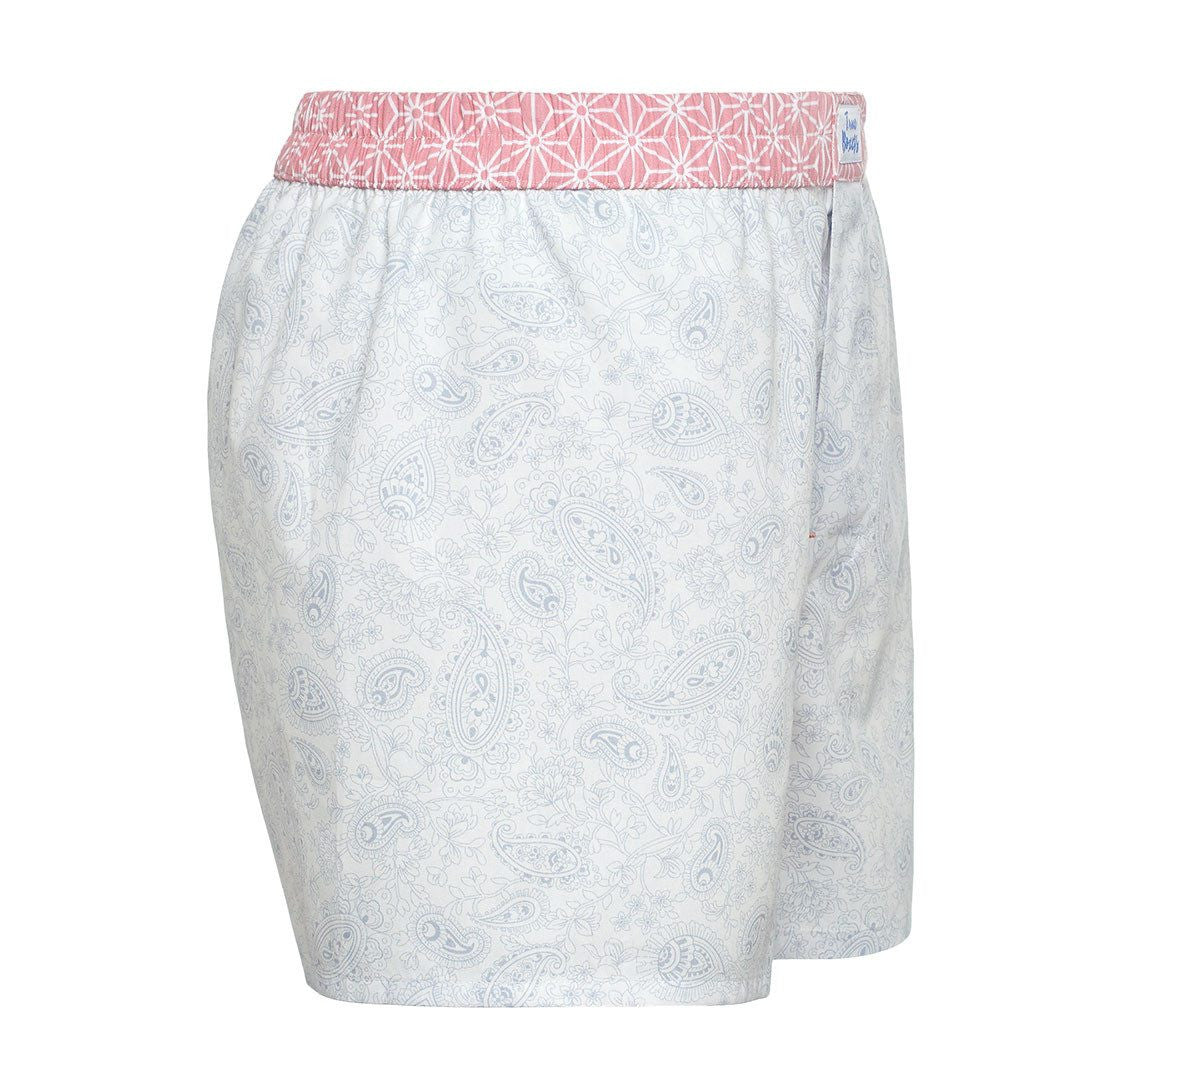 Like a King - blue paisley Boxer Short - True Boxers